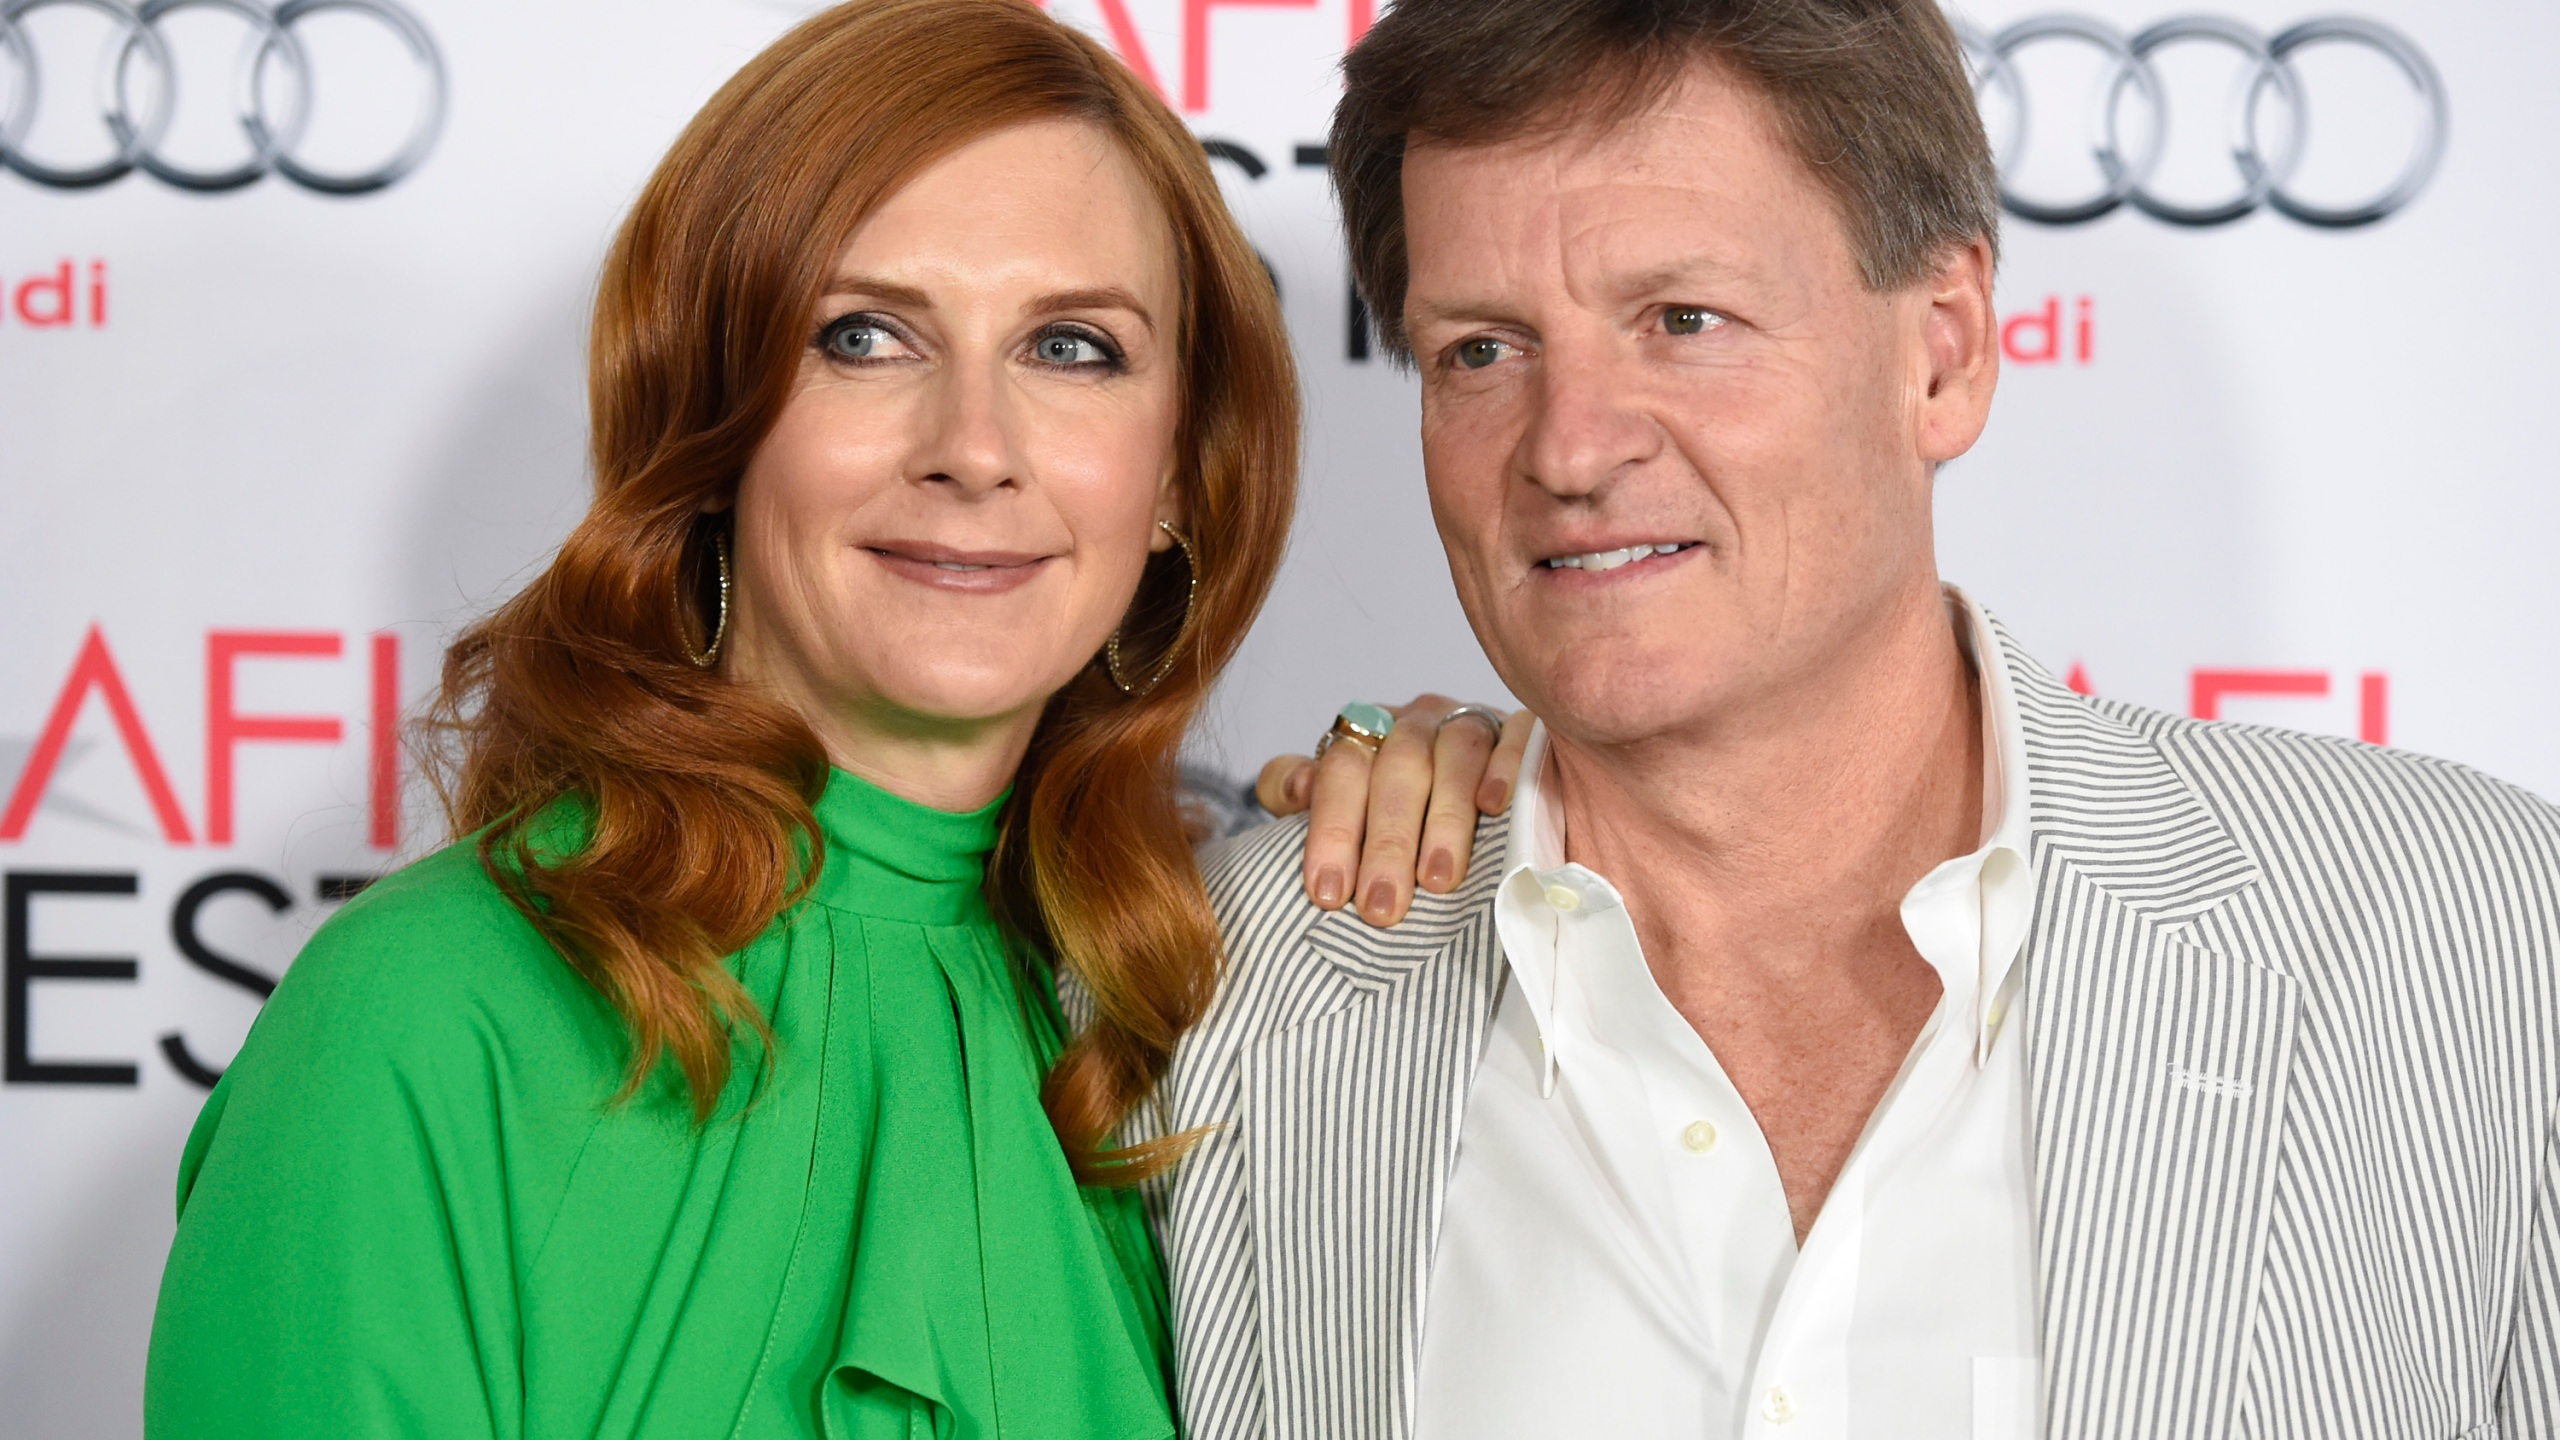 """In this Thursday, Nov. 12, 2015, file photo, Tabitha Soren, left, and Michael Lewis arrive at the world premiere of """"The Big Short"""" during the AFI Fest at the TCL Chinese Theatre, in Los Angeles. The 19-year-old daughter of """"Moneyball"""" author Lewis and former MTV correspondent Soren was killed in a Northern California highway crash, according to her family and authorities. Dixie Lewis was a passenger in a car driven by her friend and former Berkeley High School classmate, Ross Schultz, 20, who also died in the Tuesday afternoon, May 25, 2021, accident. (Photo by Chris Pizzello/Invision/AP, File)"""